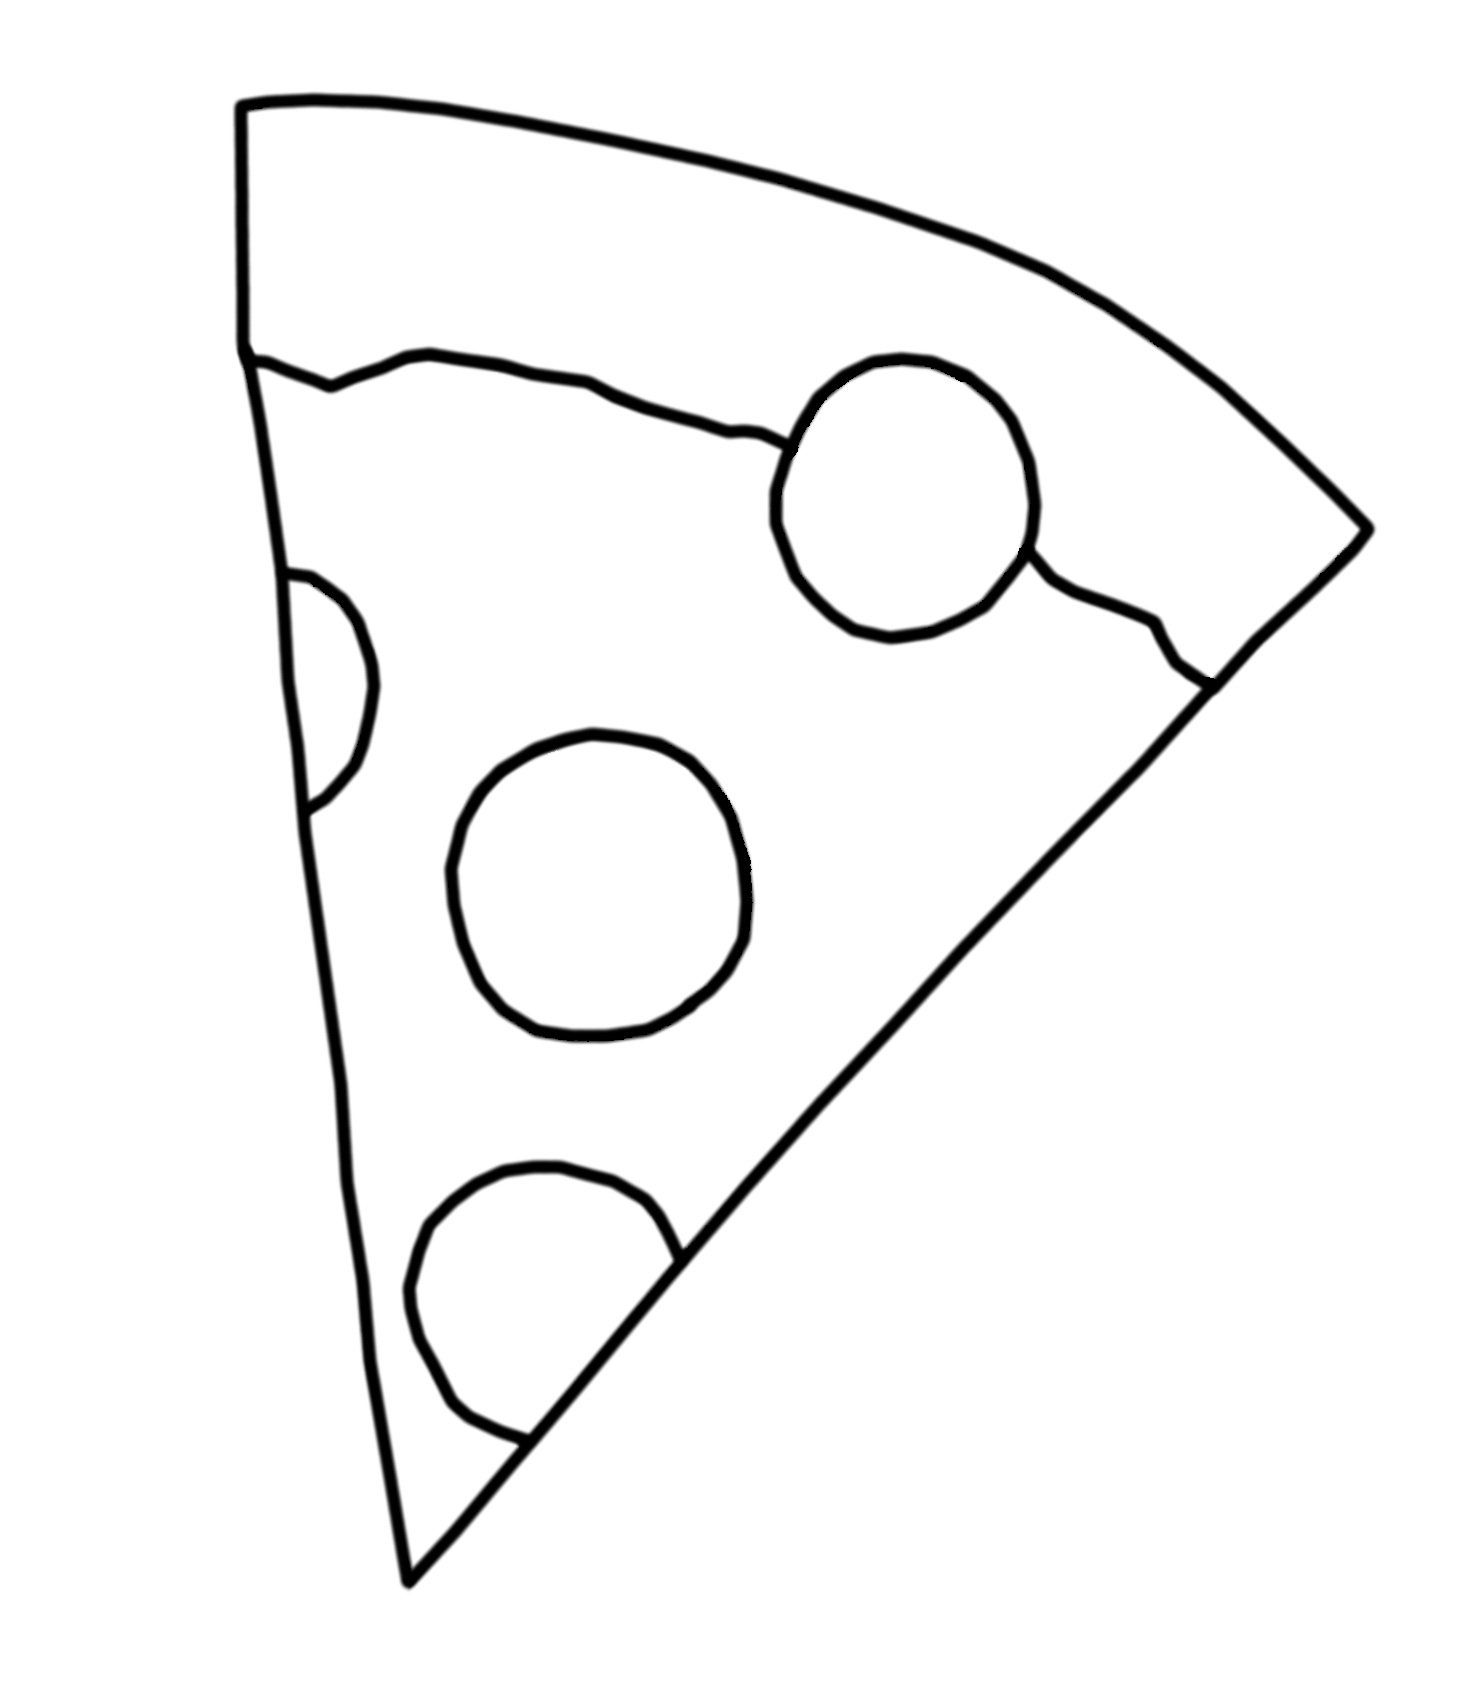 Coloring Page Pizza Slice By Blackcatstitchcrafts On Etsy With